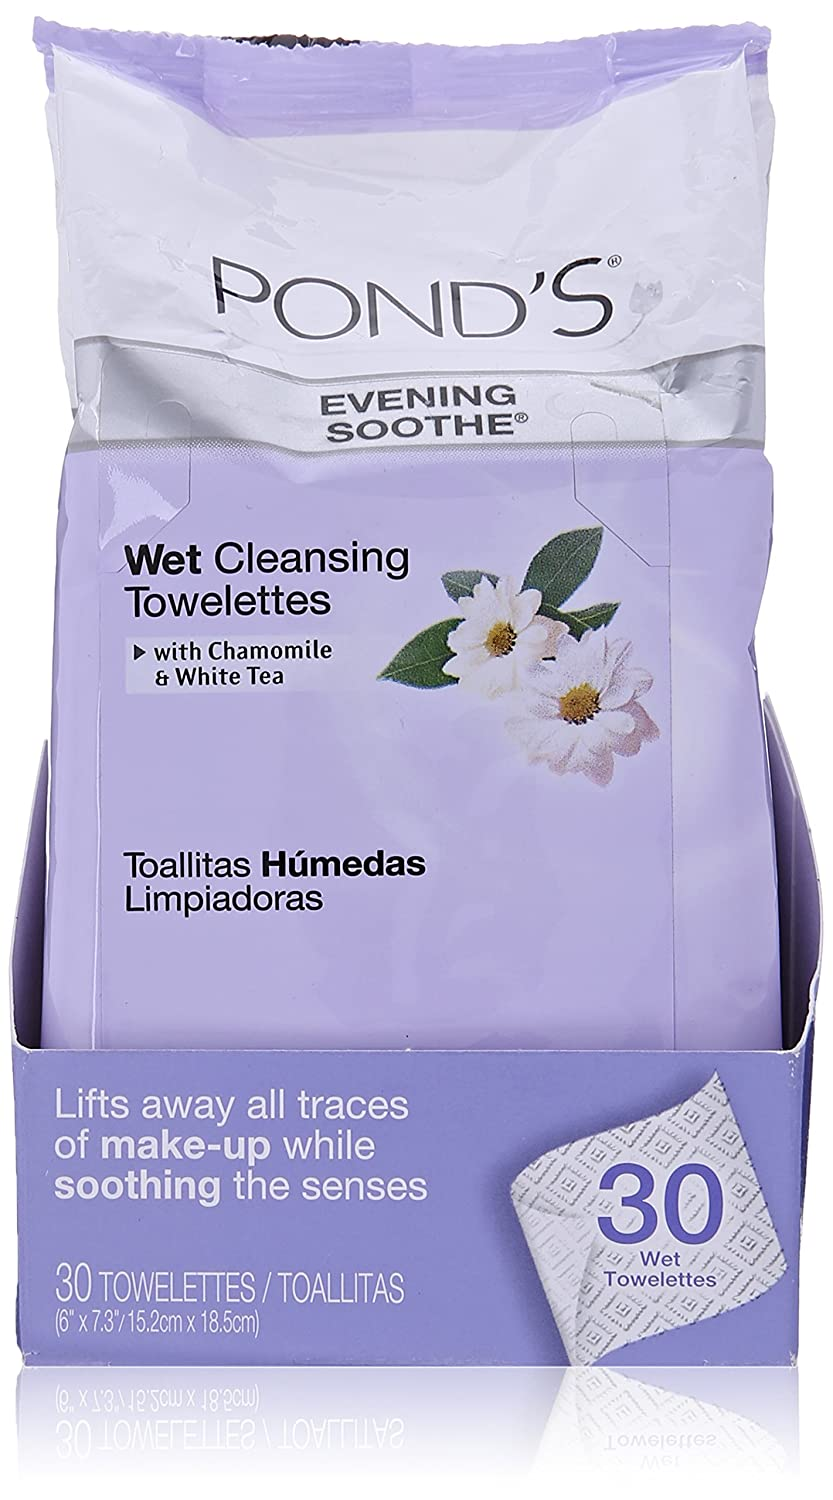 Pond's Wet Cleansing Towelettes Evening Soothe with Chamomile & White Tea 30-Count Ponds